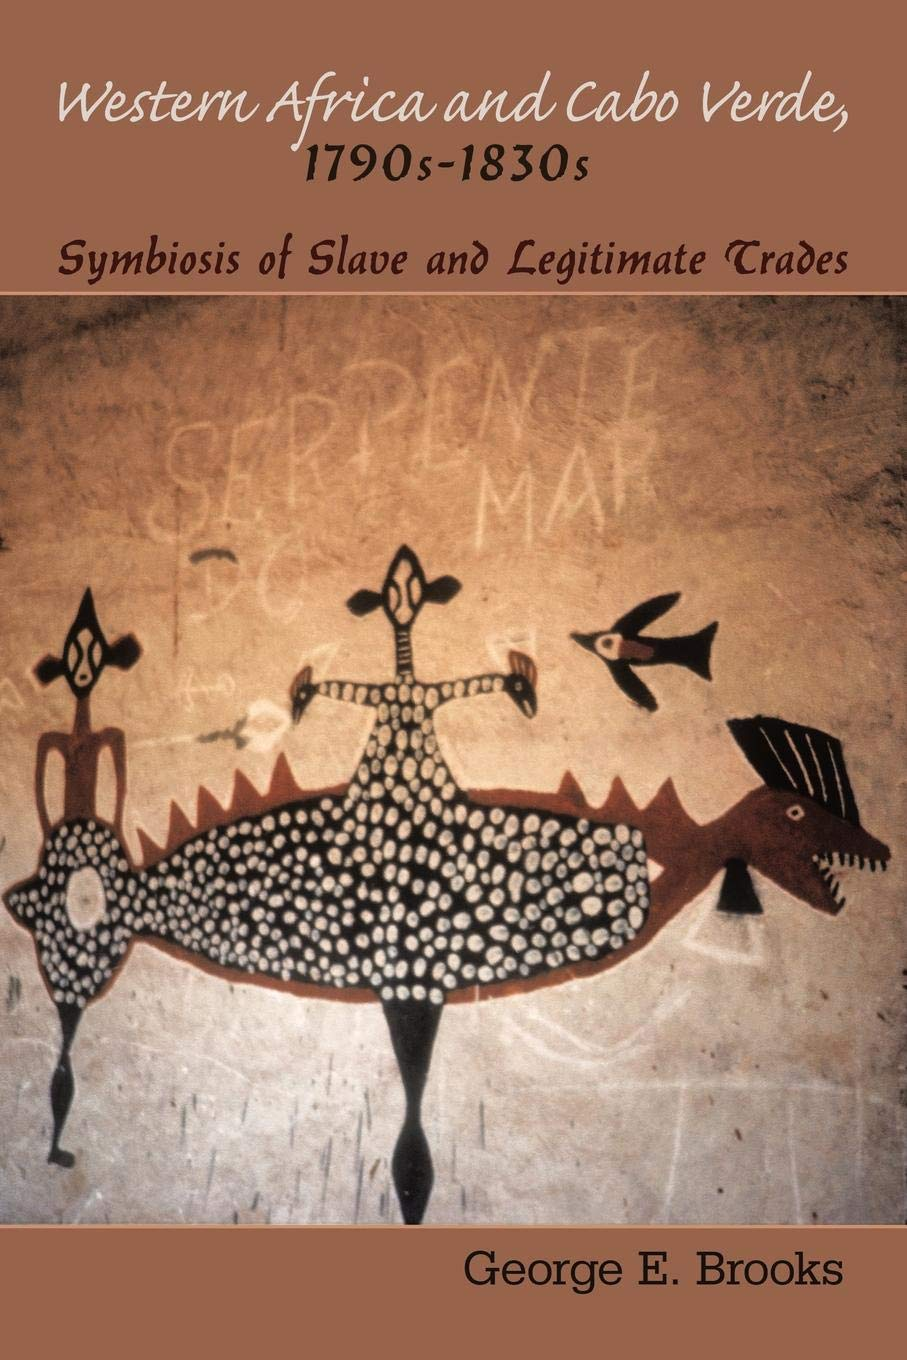 Western Africa and Cabo Verde, 1790s-1830s: Symbiosis of Slave and Legitimate Trades ebook